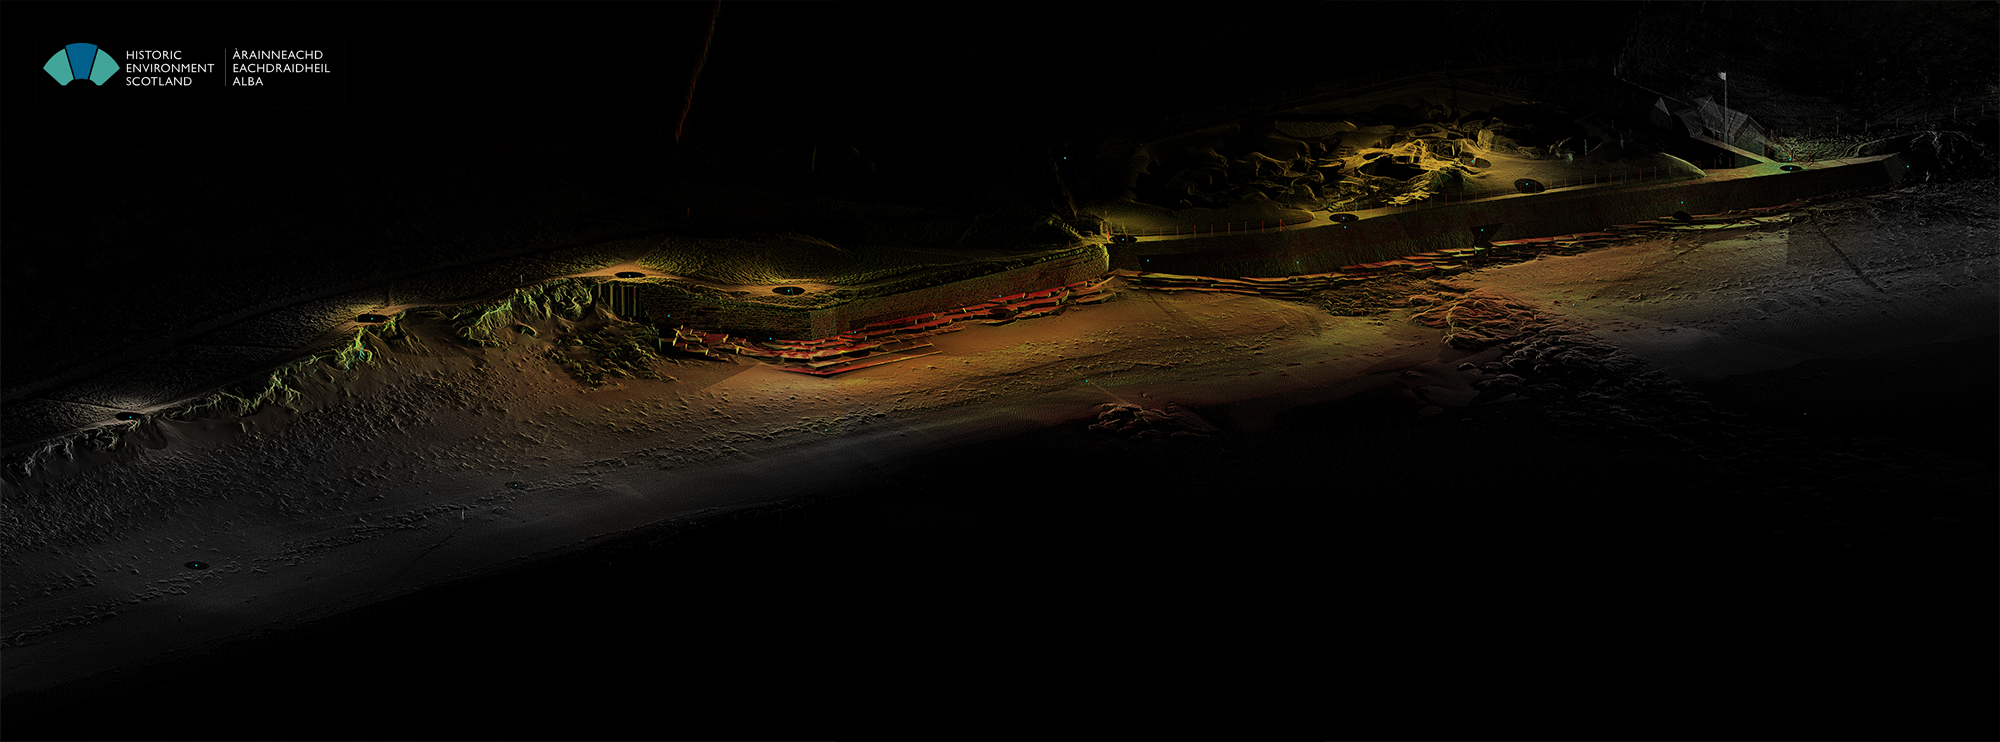 General view of the point cloud at Skara Brae from the NE, showing the protective sea wall and sand dunes to either side of it. The Neolithic village is visible at the top right part of the image.